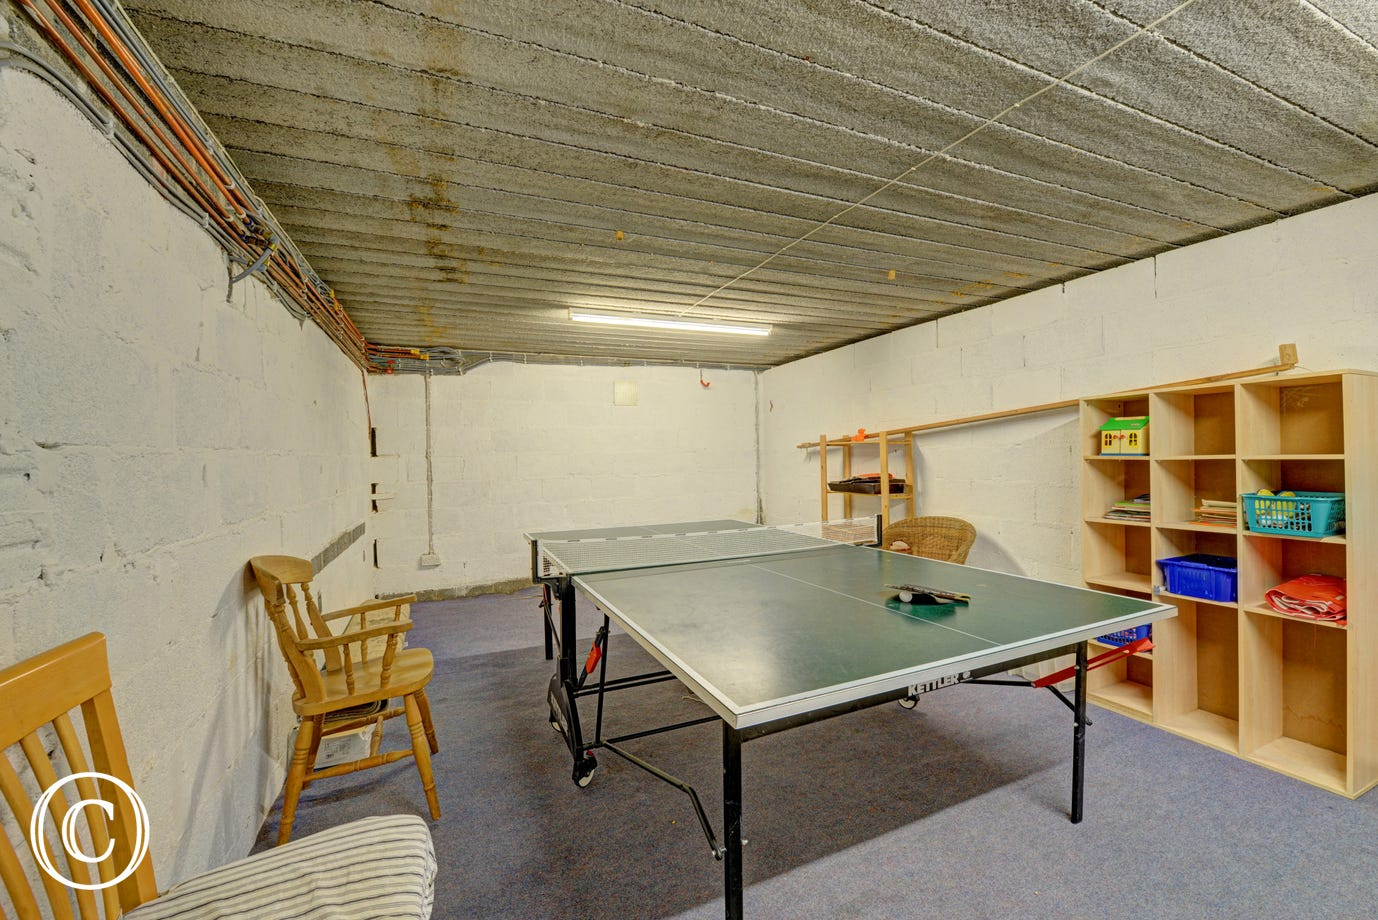 Games room - table tennis